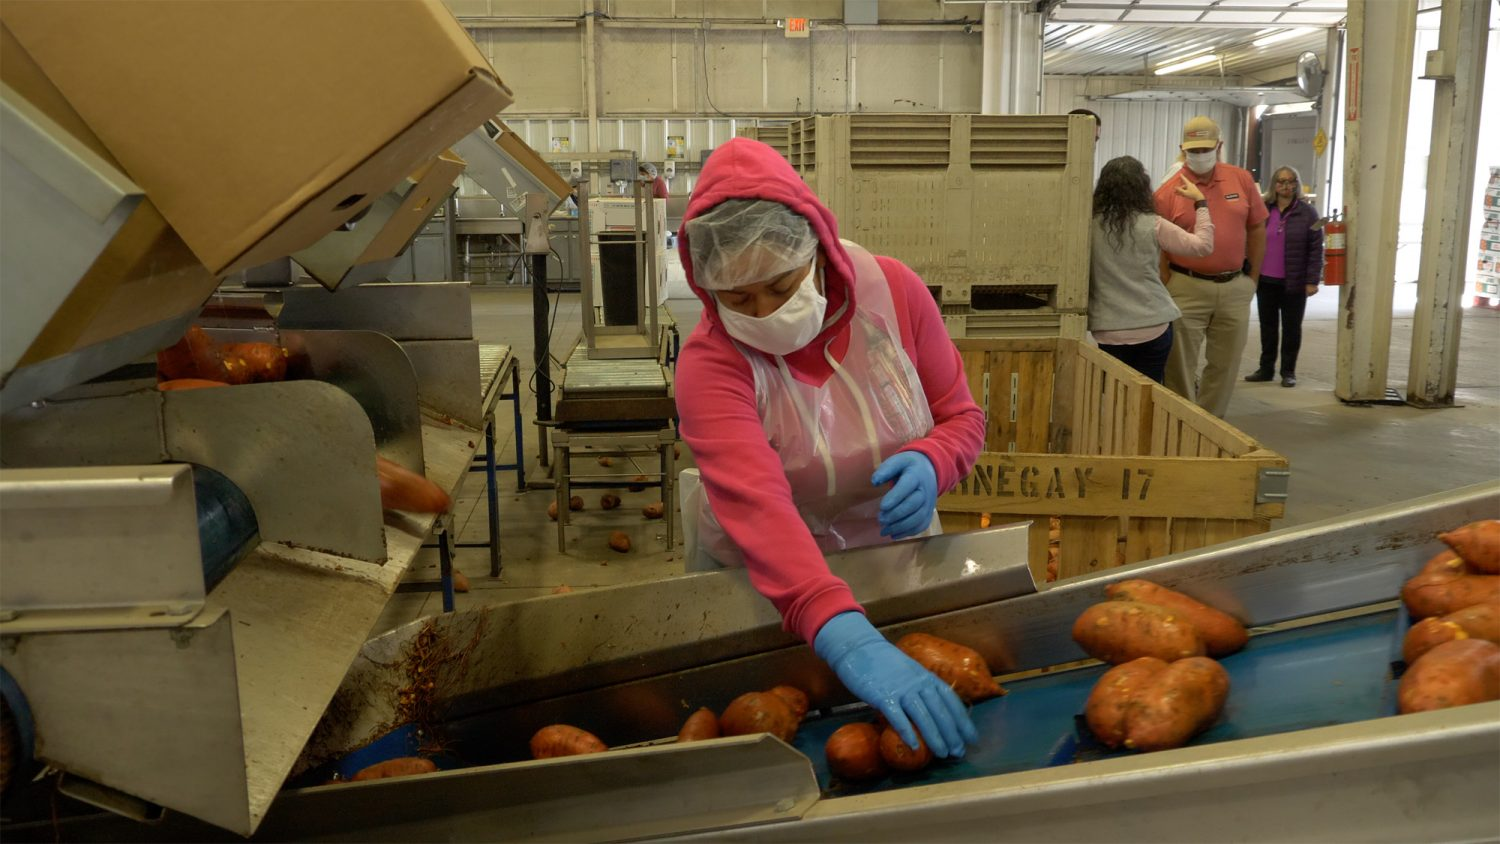 A female employee wearing a face mask and gloves sorts sweet potatoes on a conveyor belt in a food packaging facility.